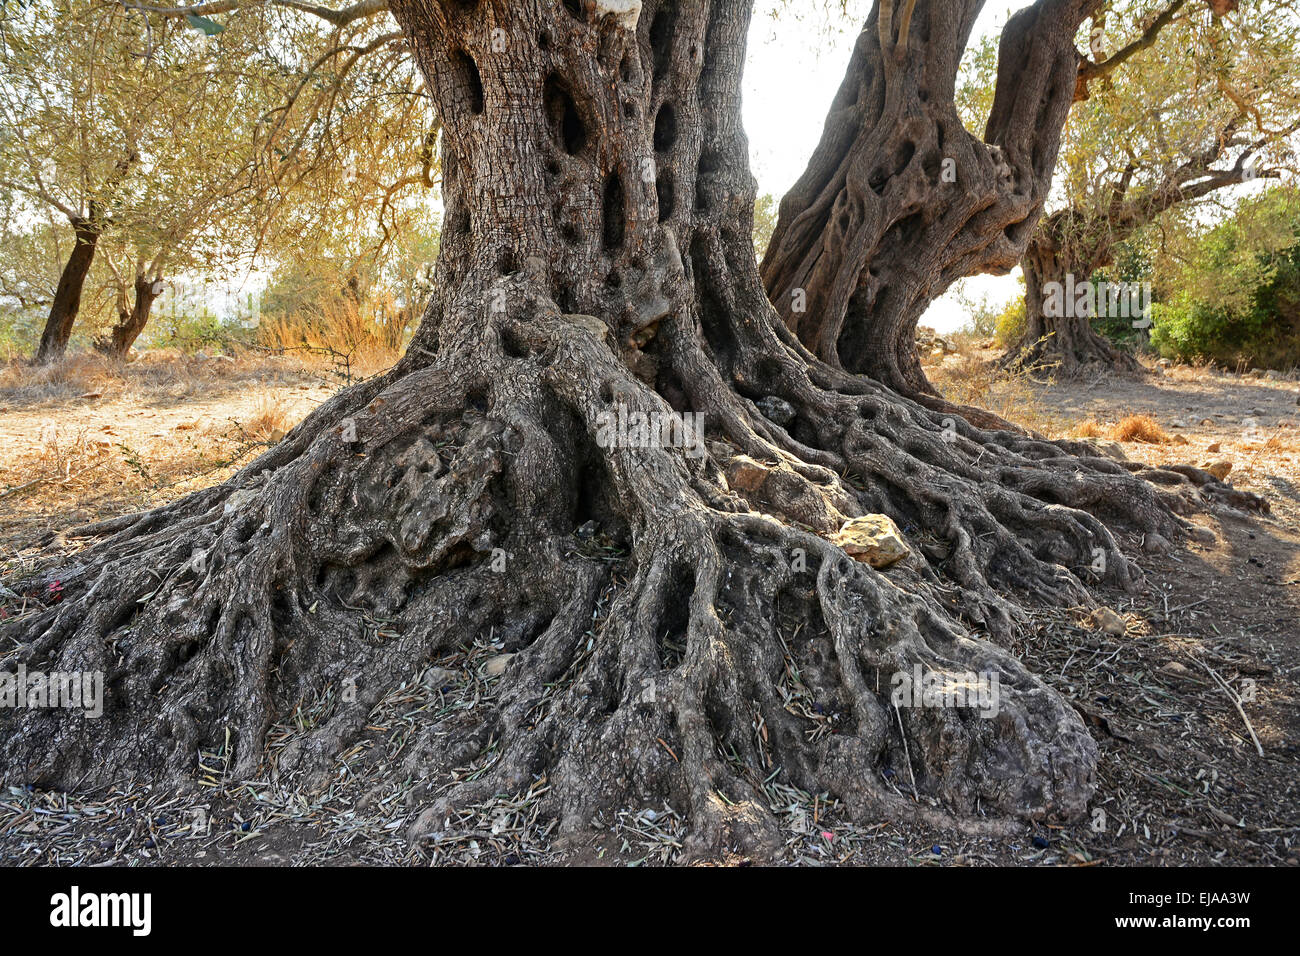 Old Olive tree old Trunk. - Stock Image